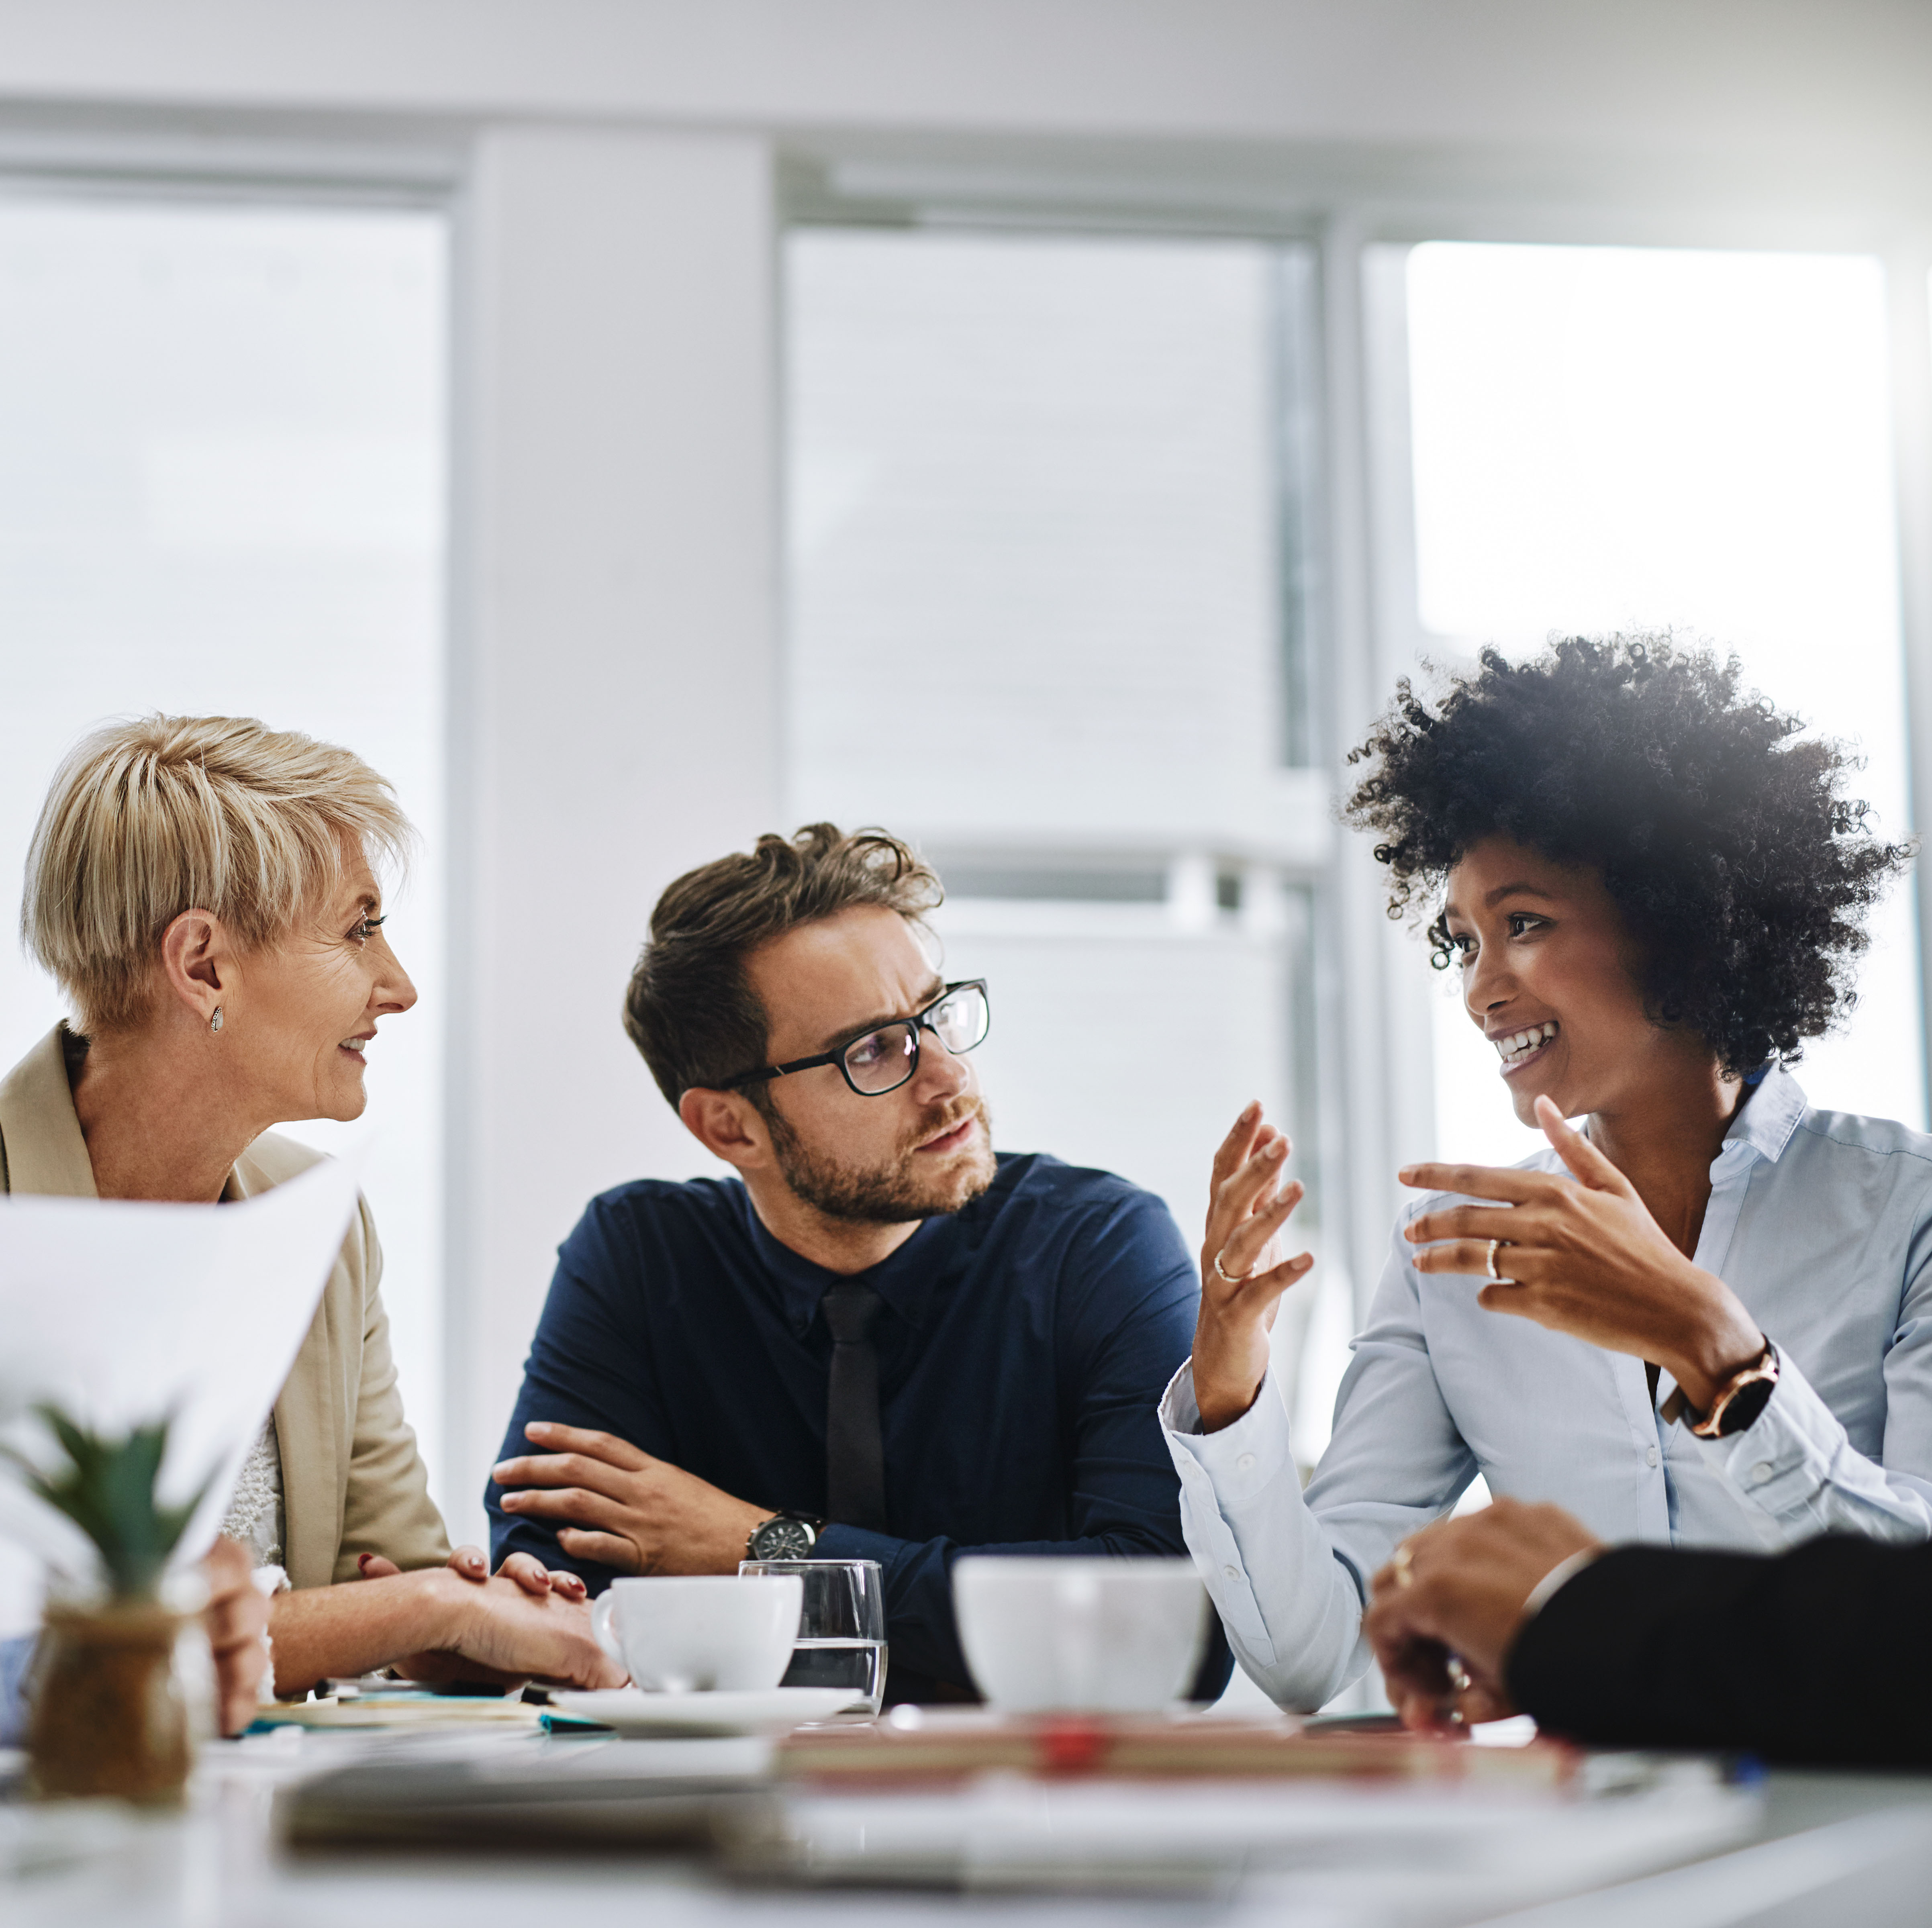 Three professionals having a conversation in a work environment